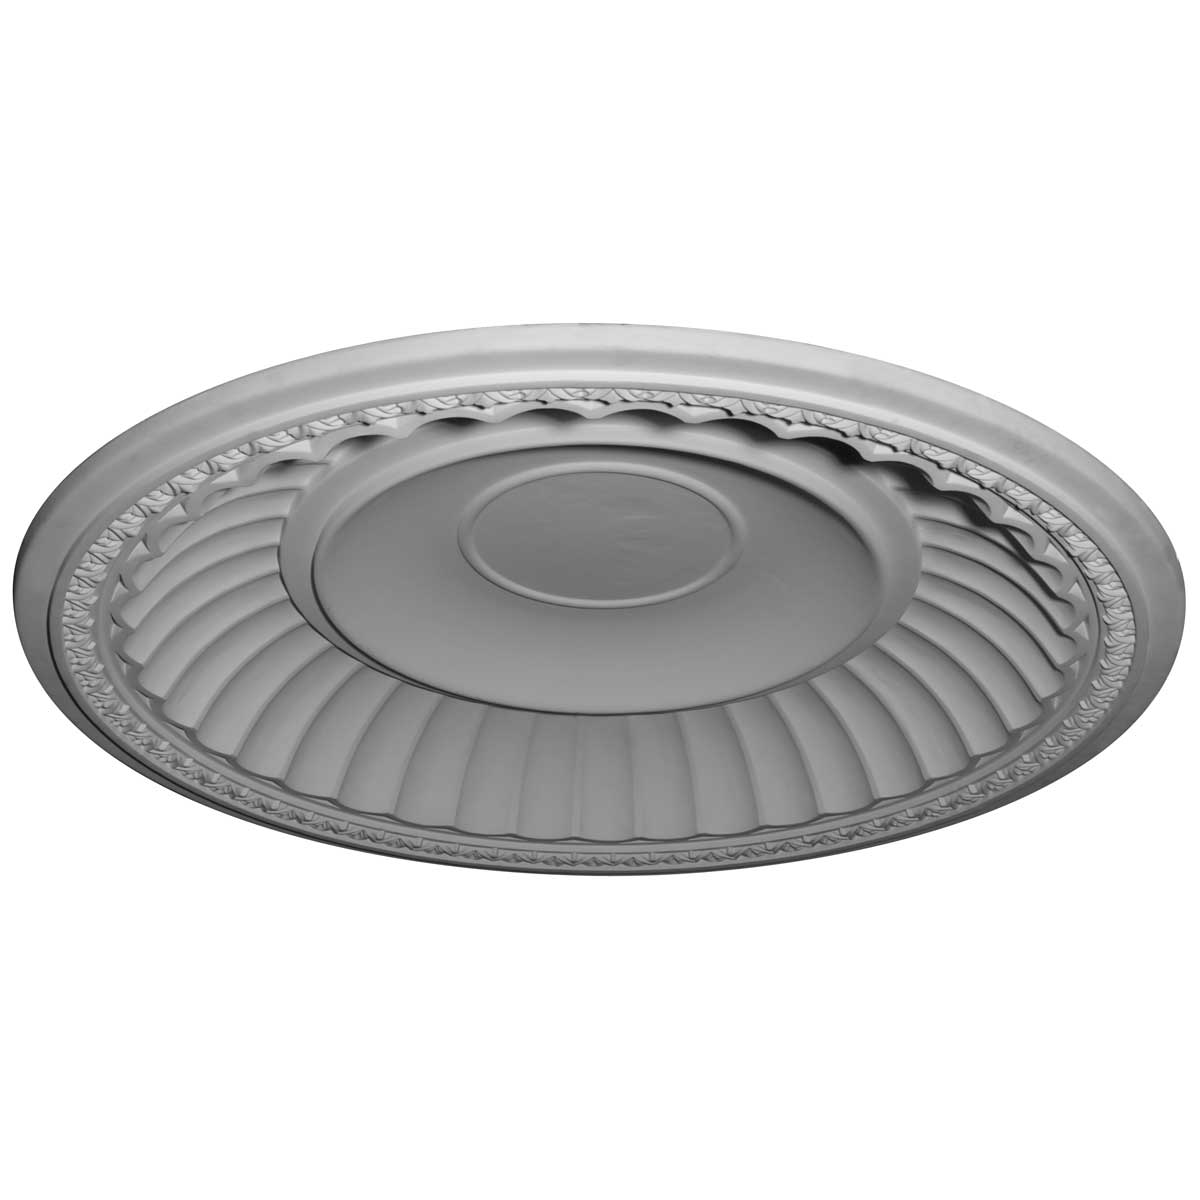 """DOME59DU 59-1/4""""OD x 50-1/8""""ID x 8-3/8""""D Dublin Recessed Mount Ceiling Dome (51-1/4""""Diameter x 9""""D Rough Opening)"""